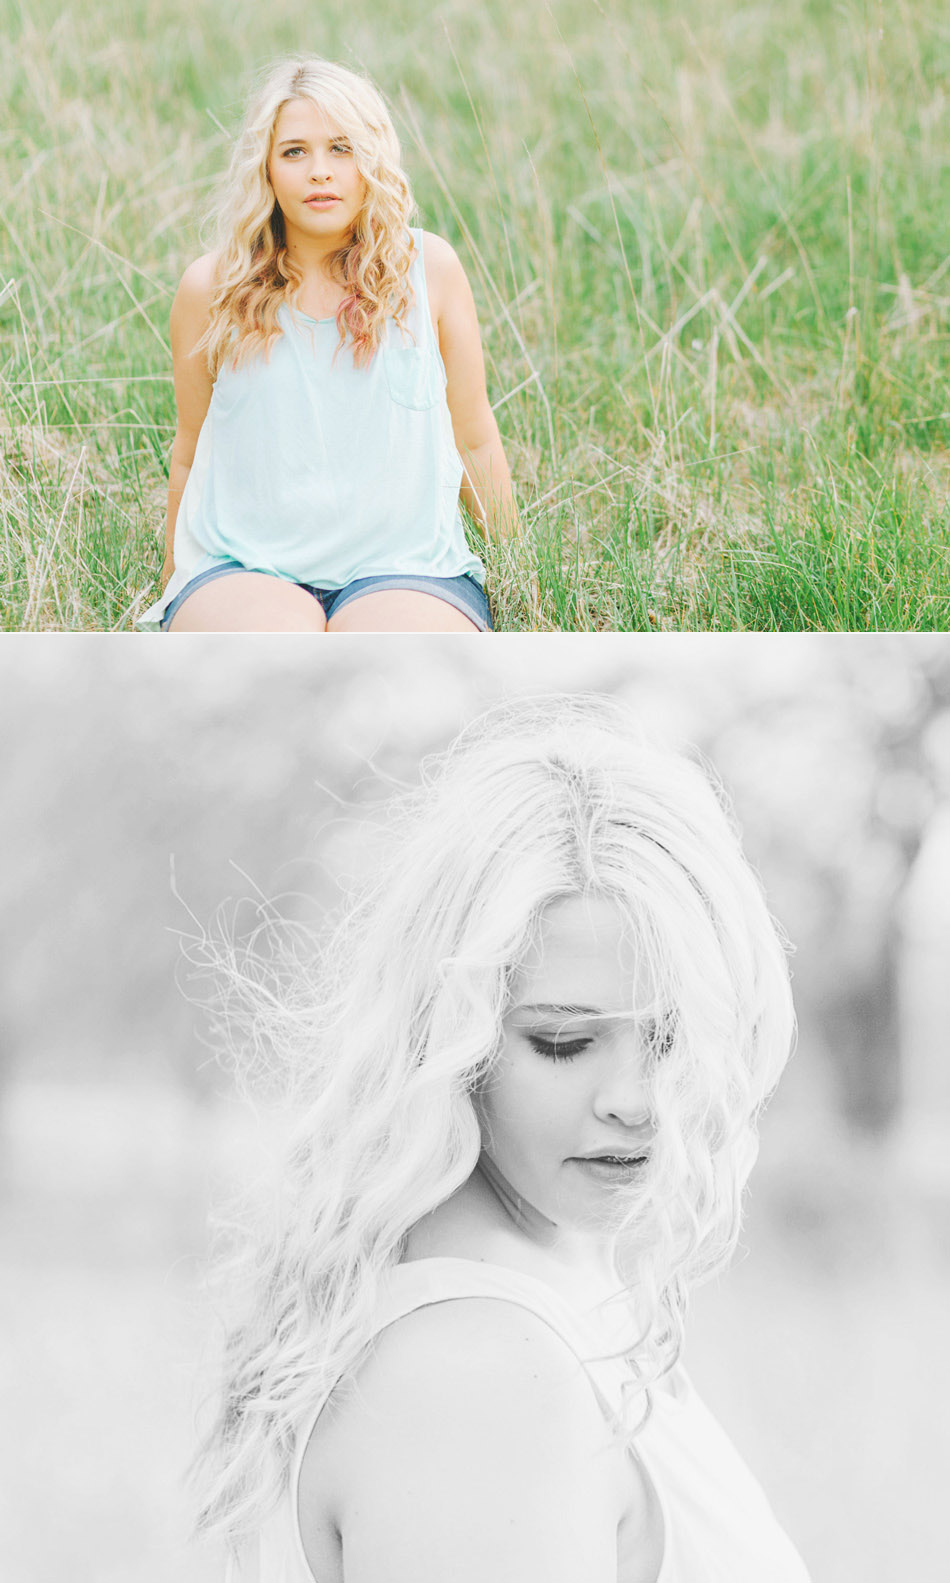 Lux Senior Photography | Fine Art Senior Portraits in Dayton, Ohio